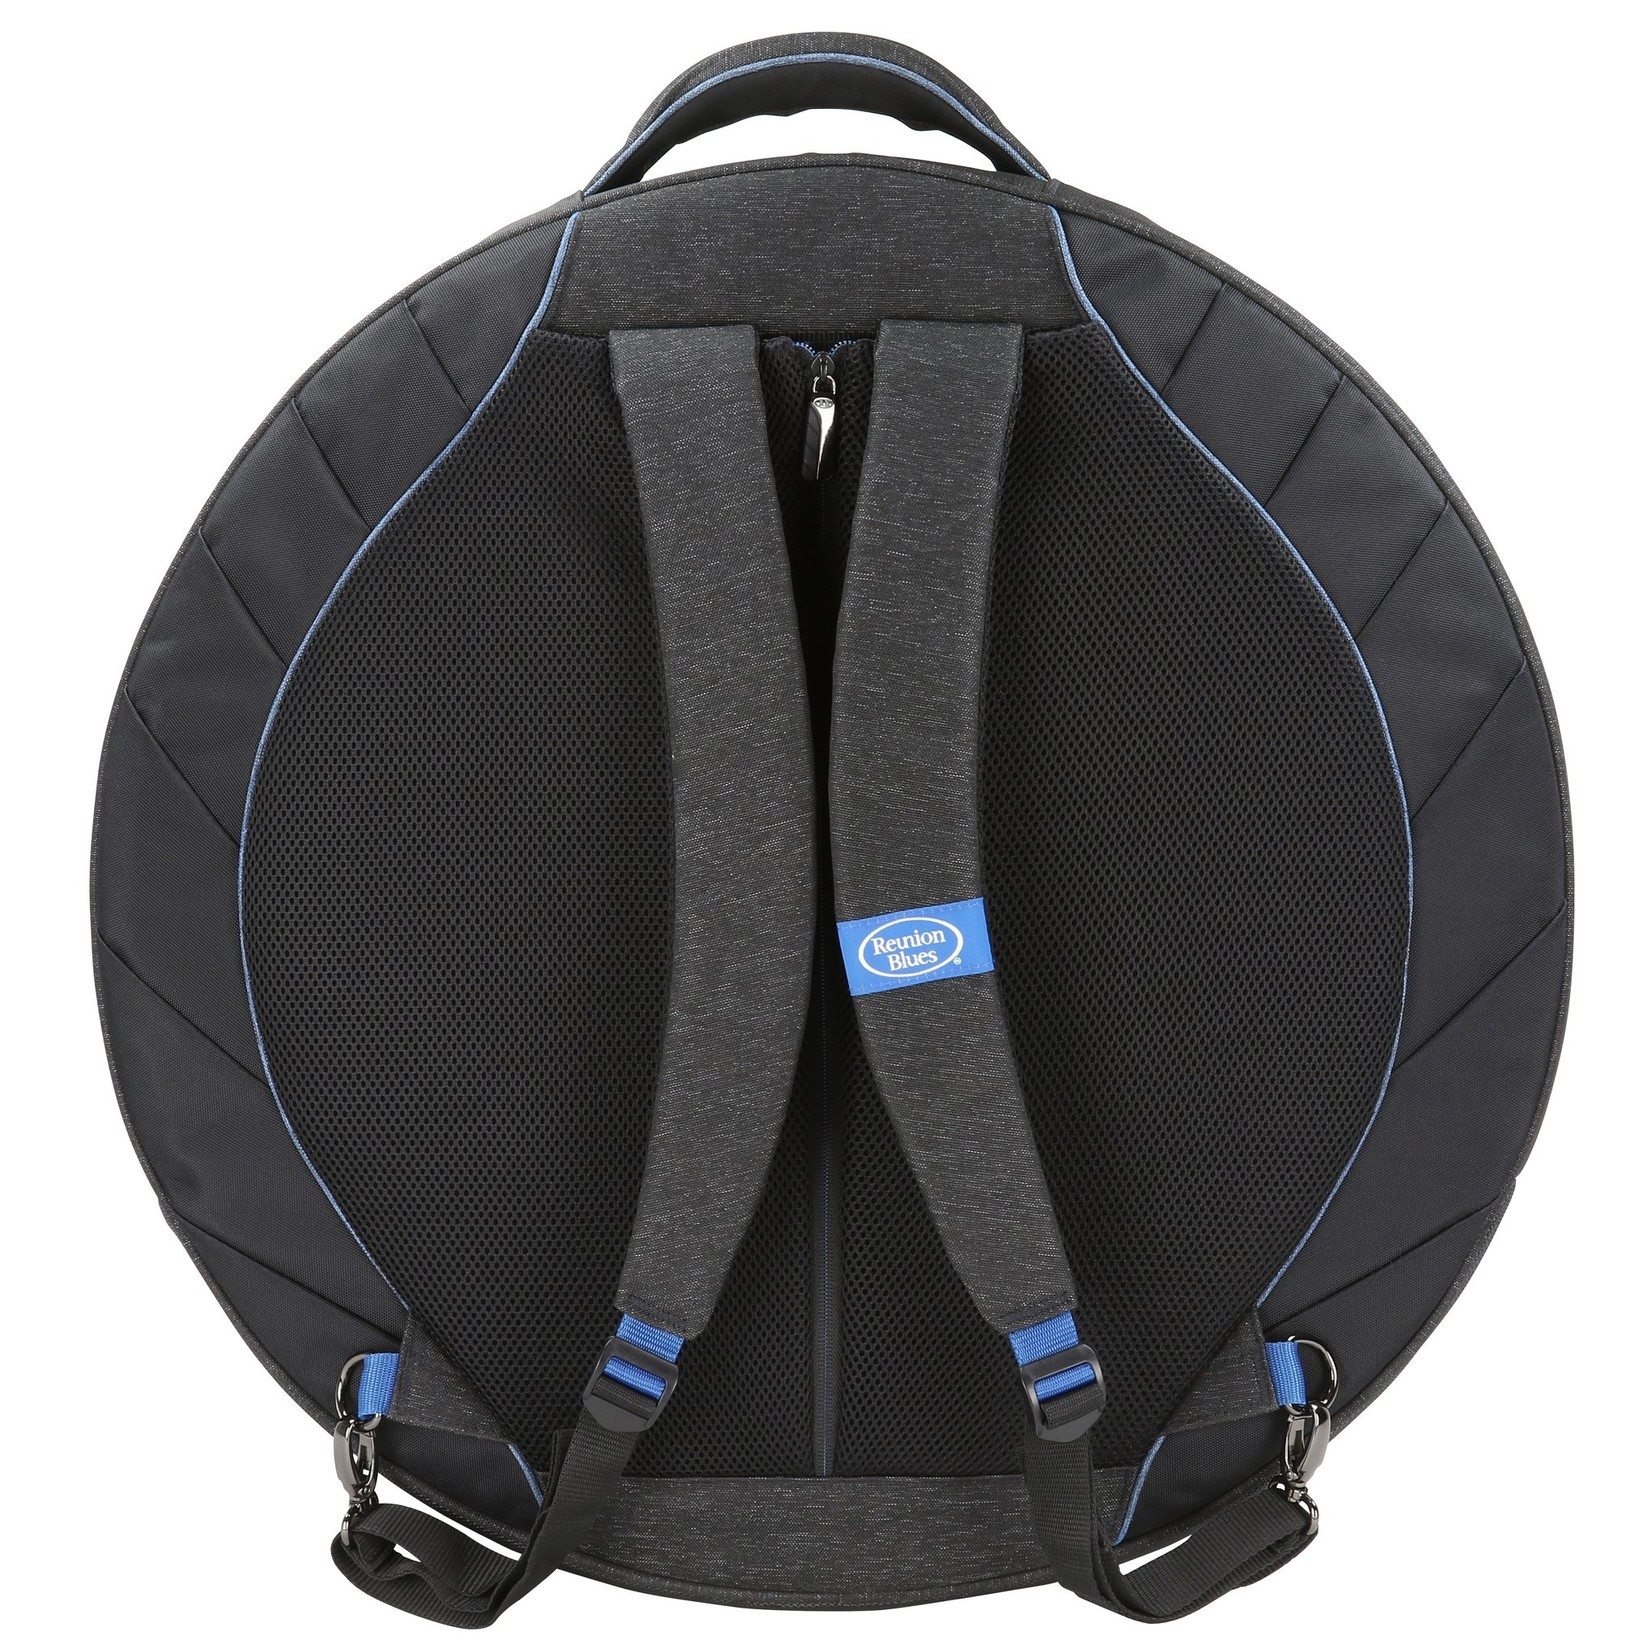 Reunion Blues Reunion Blues RB Continental Voyager Cymbal Case